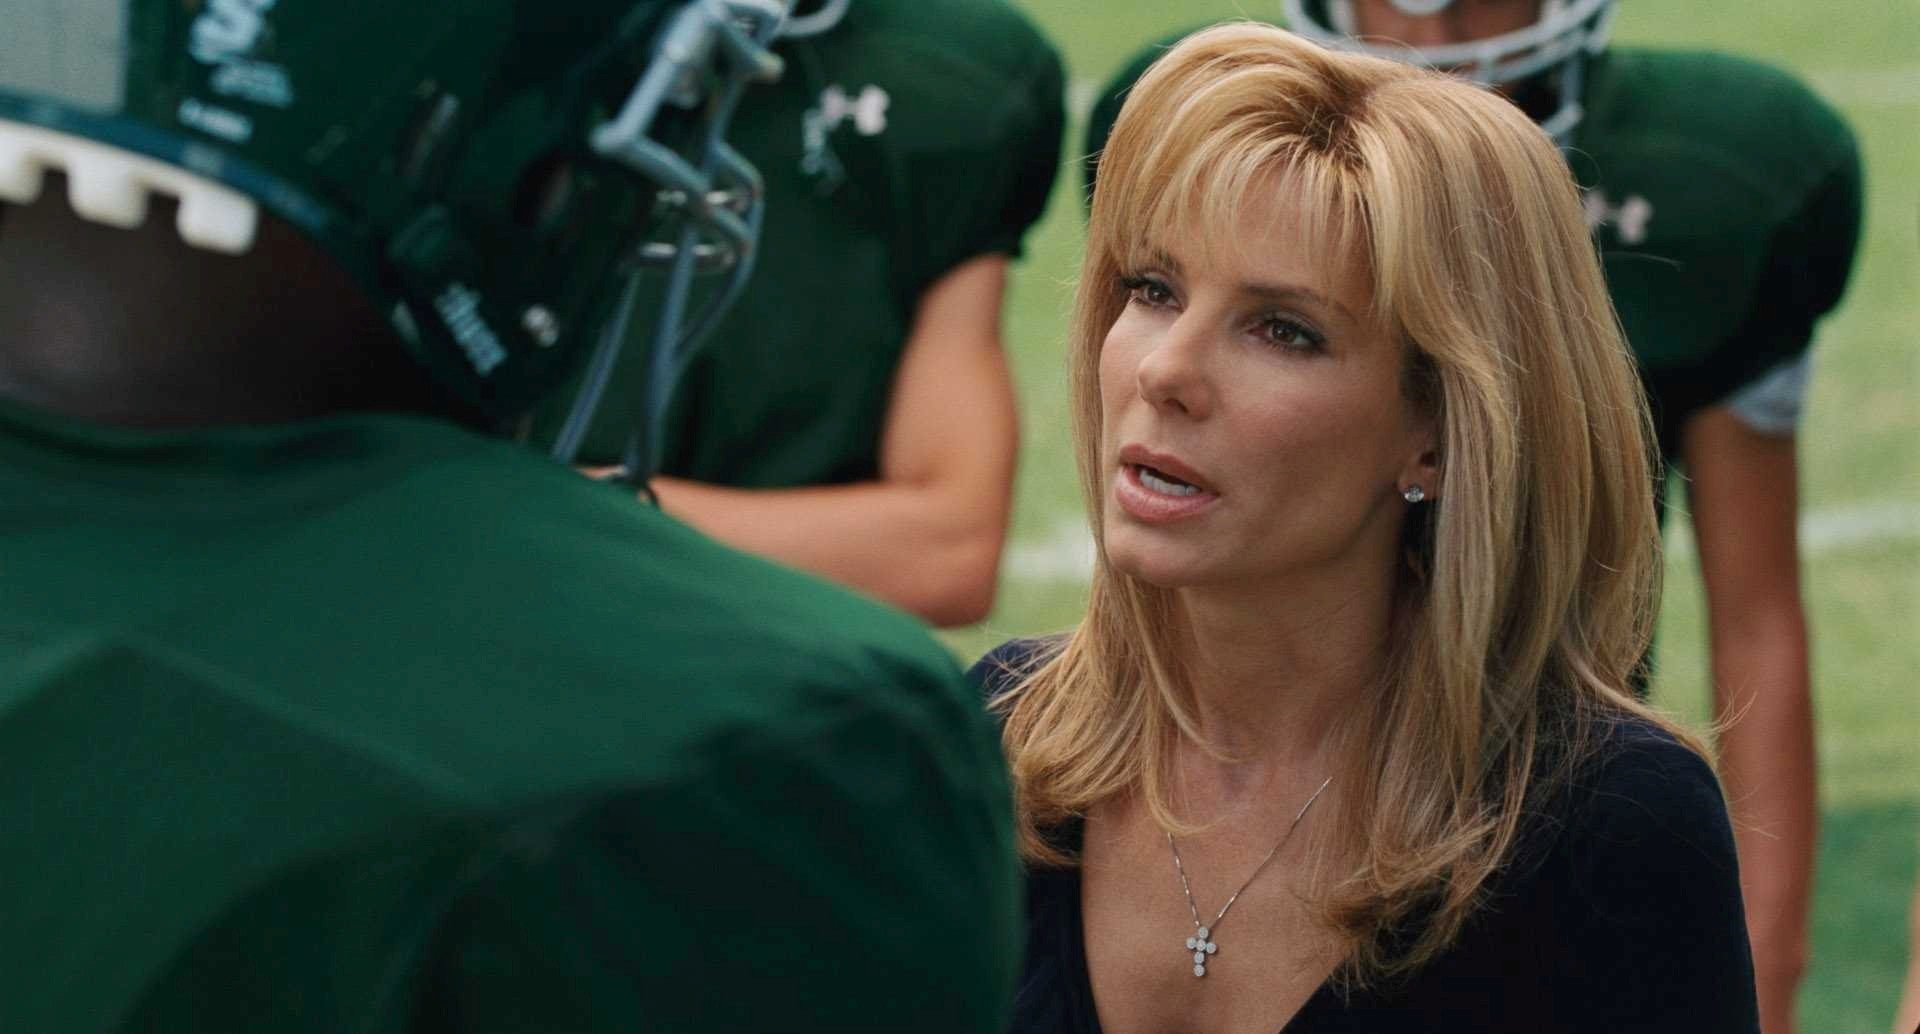 sandra_bullock_in_movie_the_blind_side_wallpaper.jpg